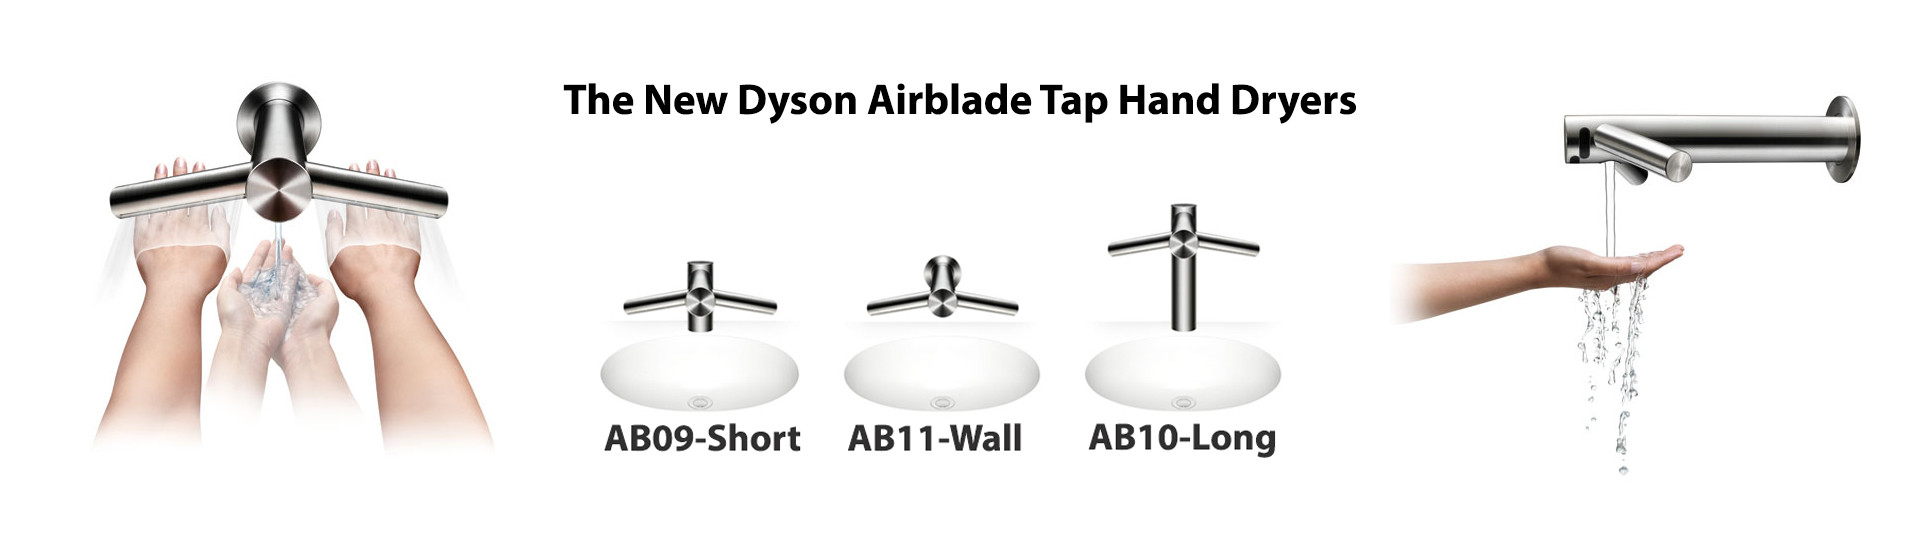 Dyson Airblade Tap Hand Dryers